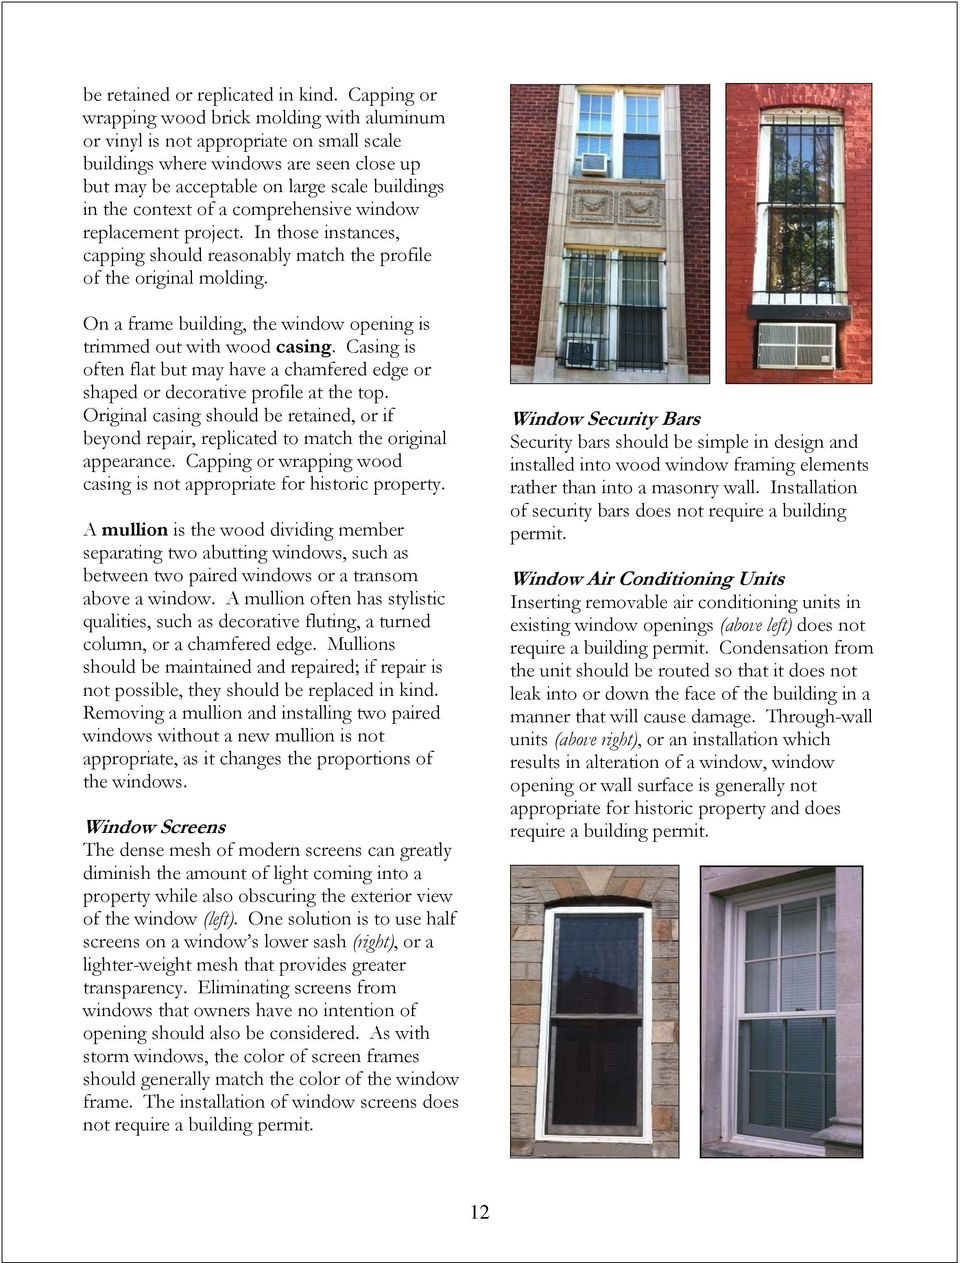 of a comprehensive window replacement project. In those instances, capping should reasonably match the profile of the original molding.